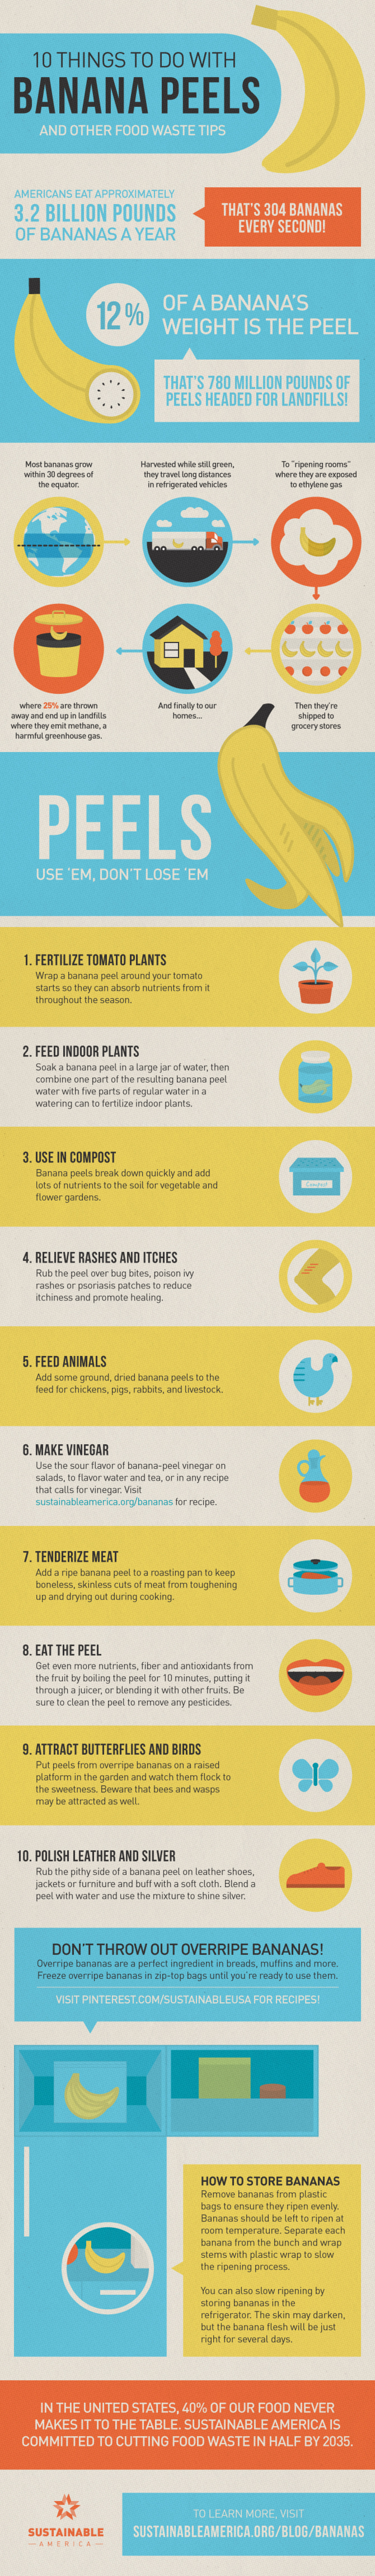 10 Things to Do With Banana Peels Infographic